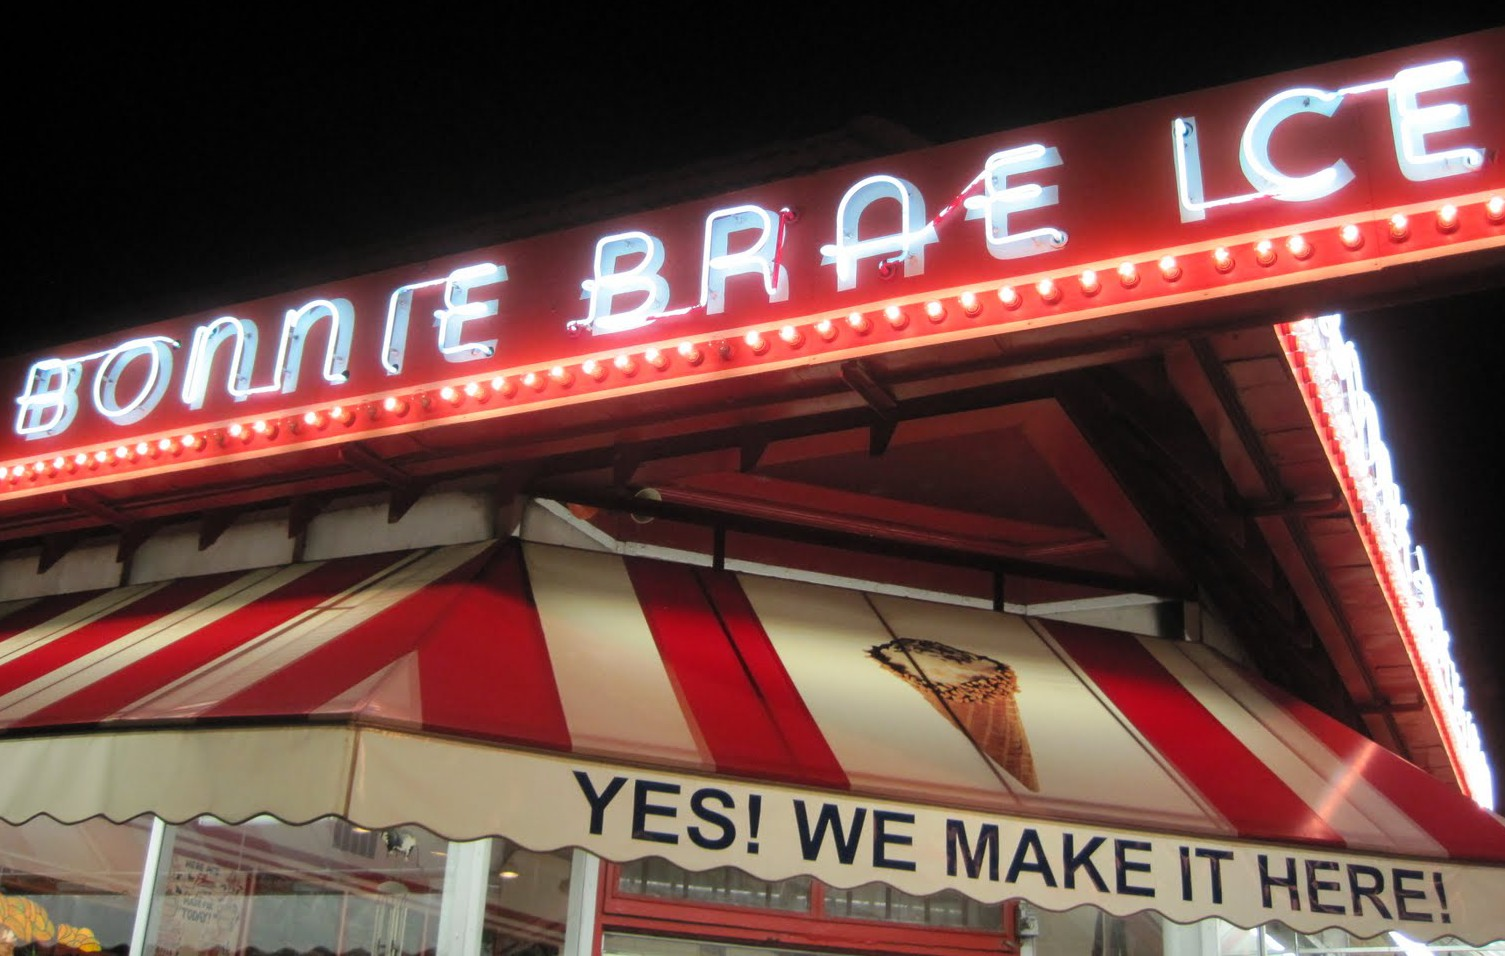 Bonnie Brae Ice Cream photo